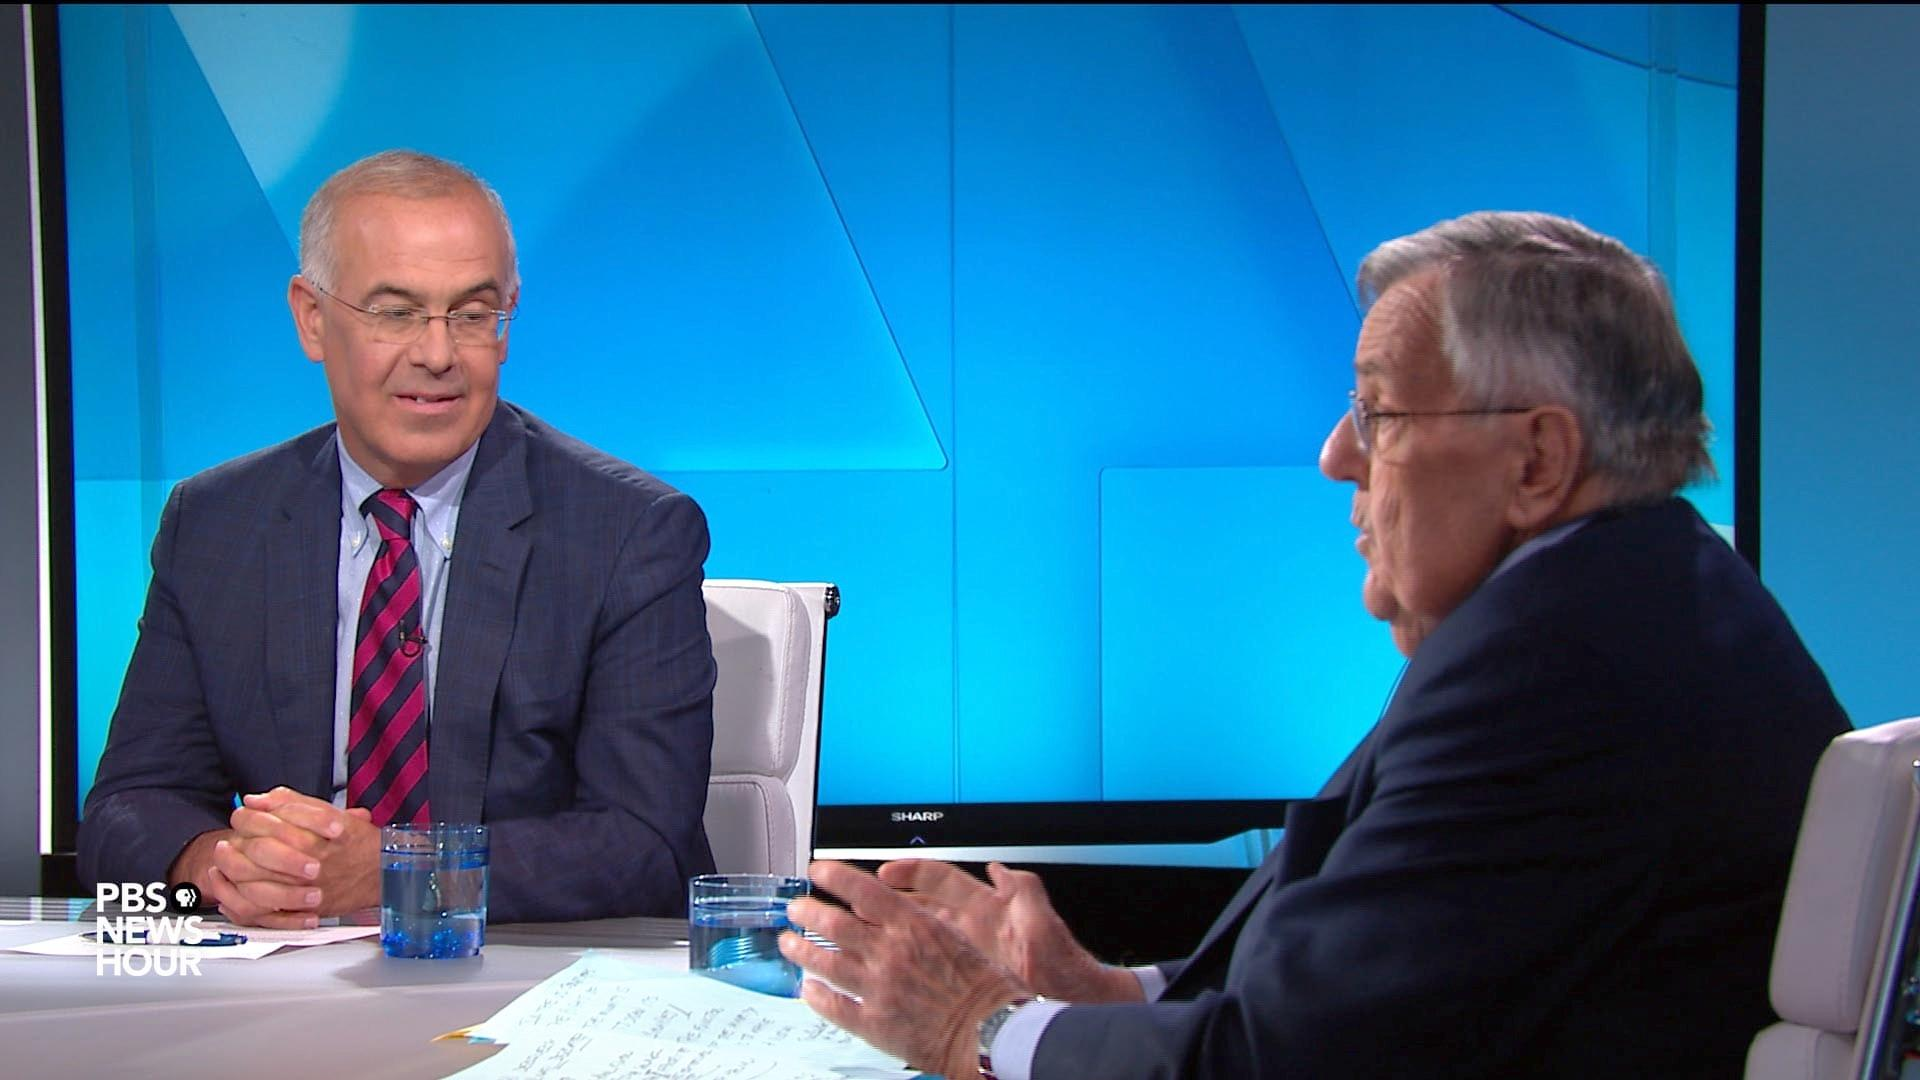 Shields and Brooks on Trump and race, Democrats' 2020 values